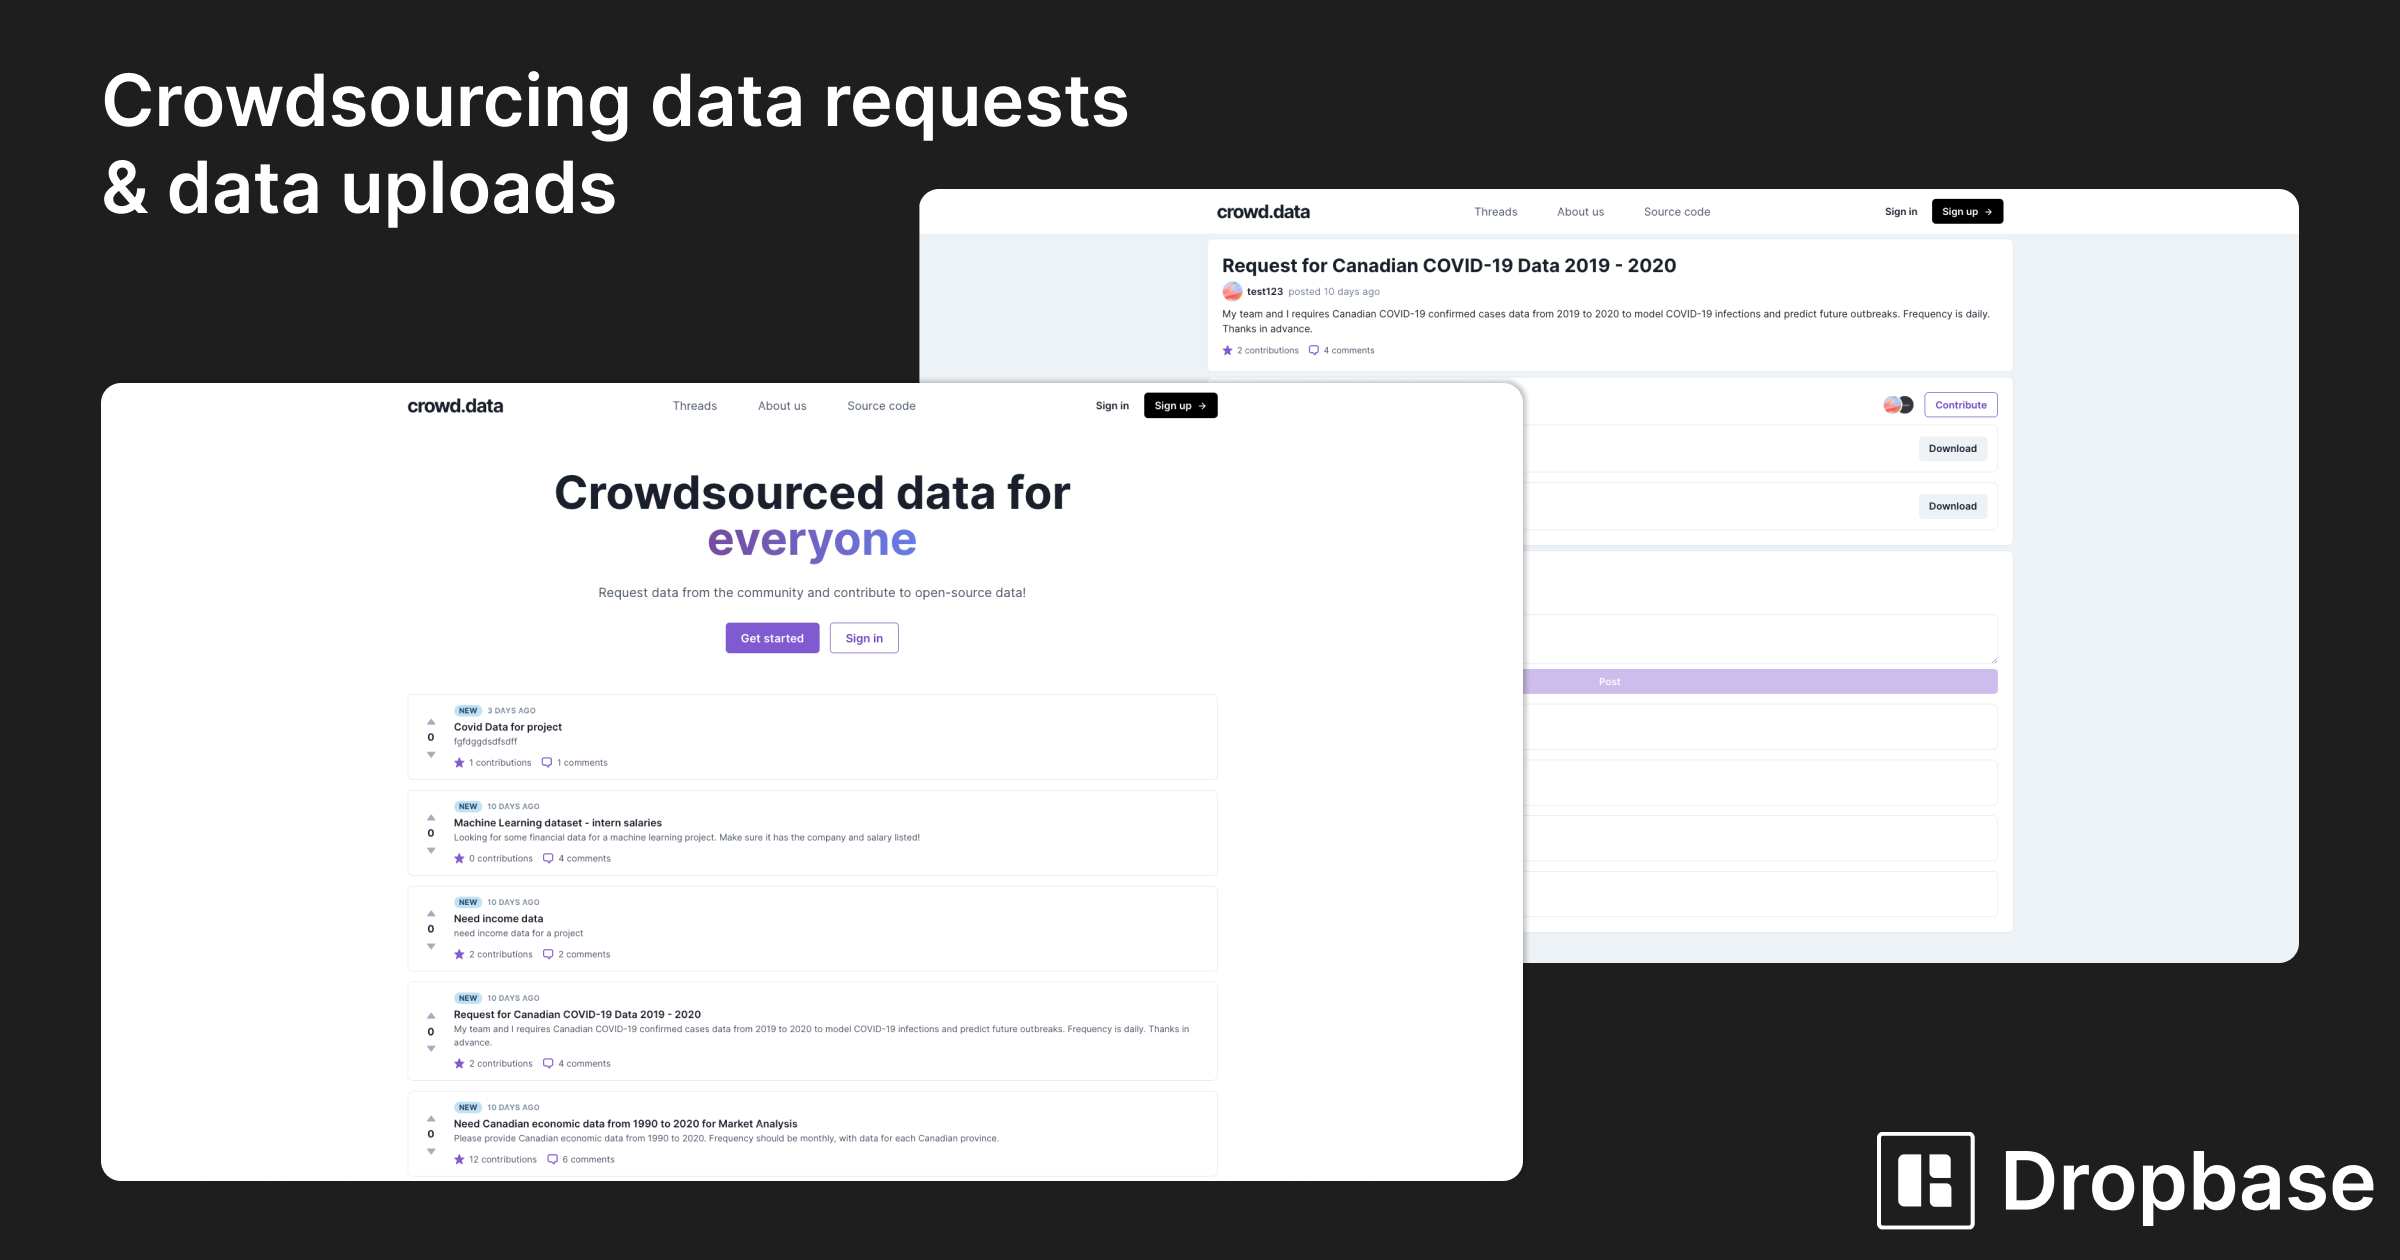 crowdsourcing data requests and data uploads with crowd.data and Dropbase